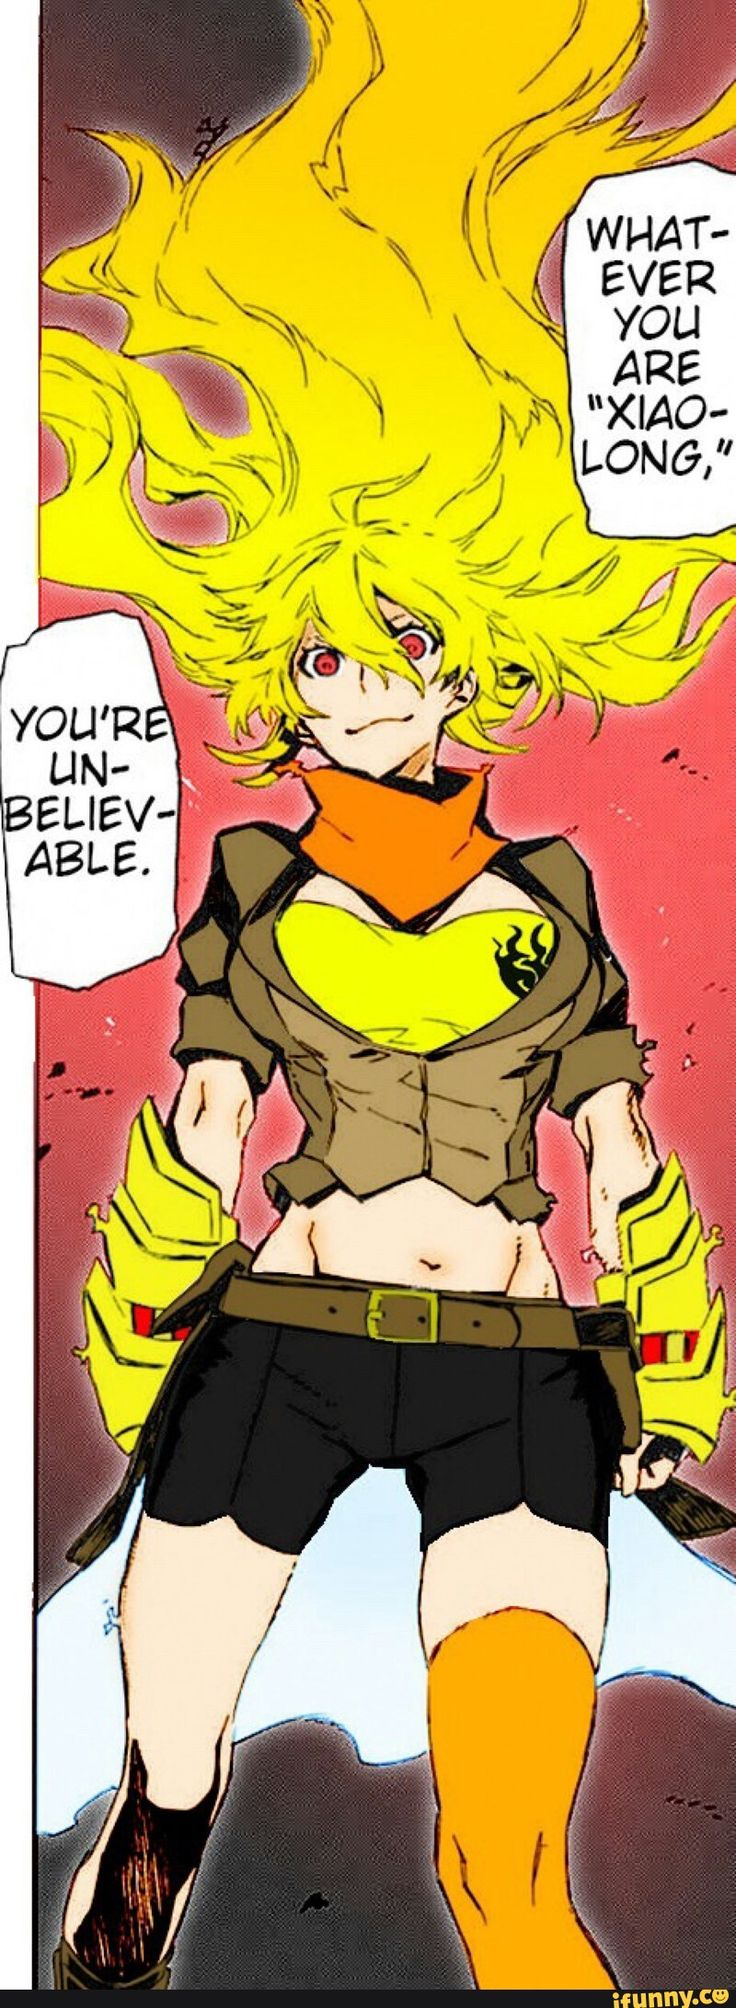 RWBY, yang why is she pissed she looks happy